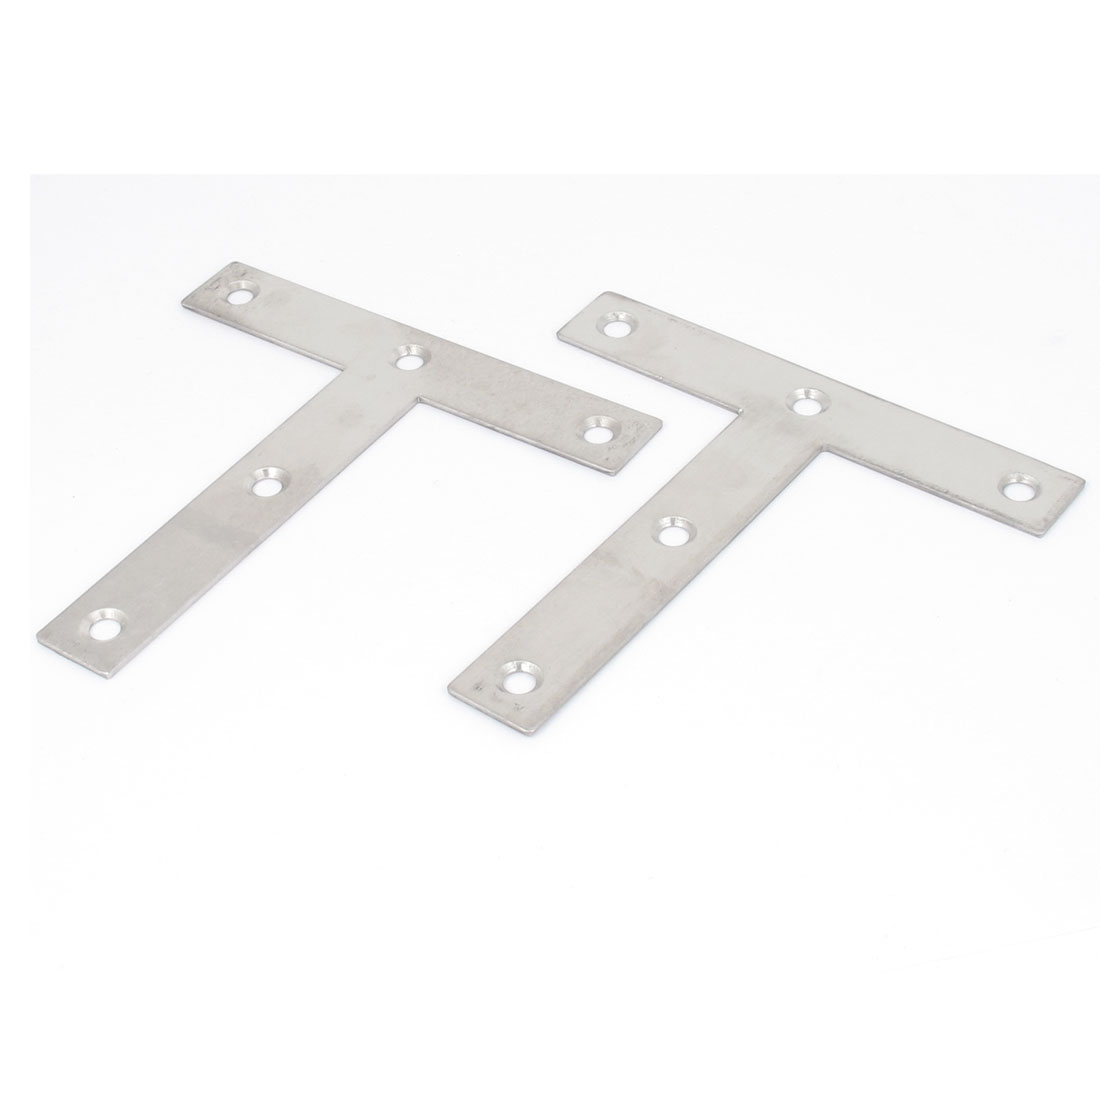 120mmx120mm Flat T Shape Angle Plate Corner Brace Repair Brackets 2pcs